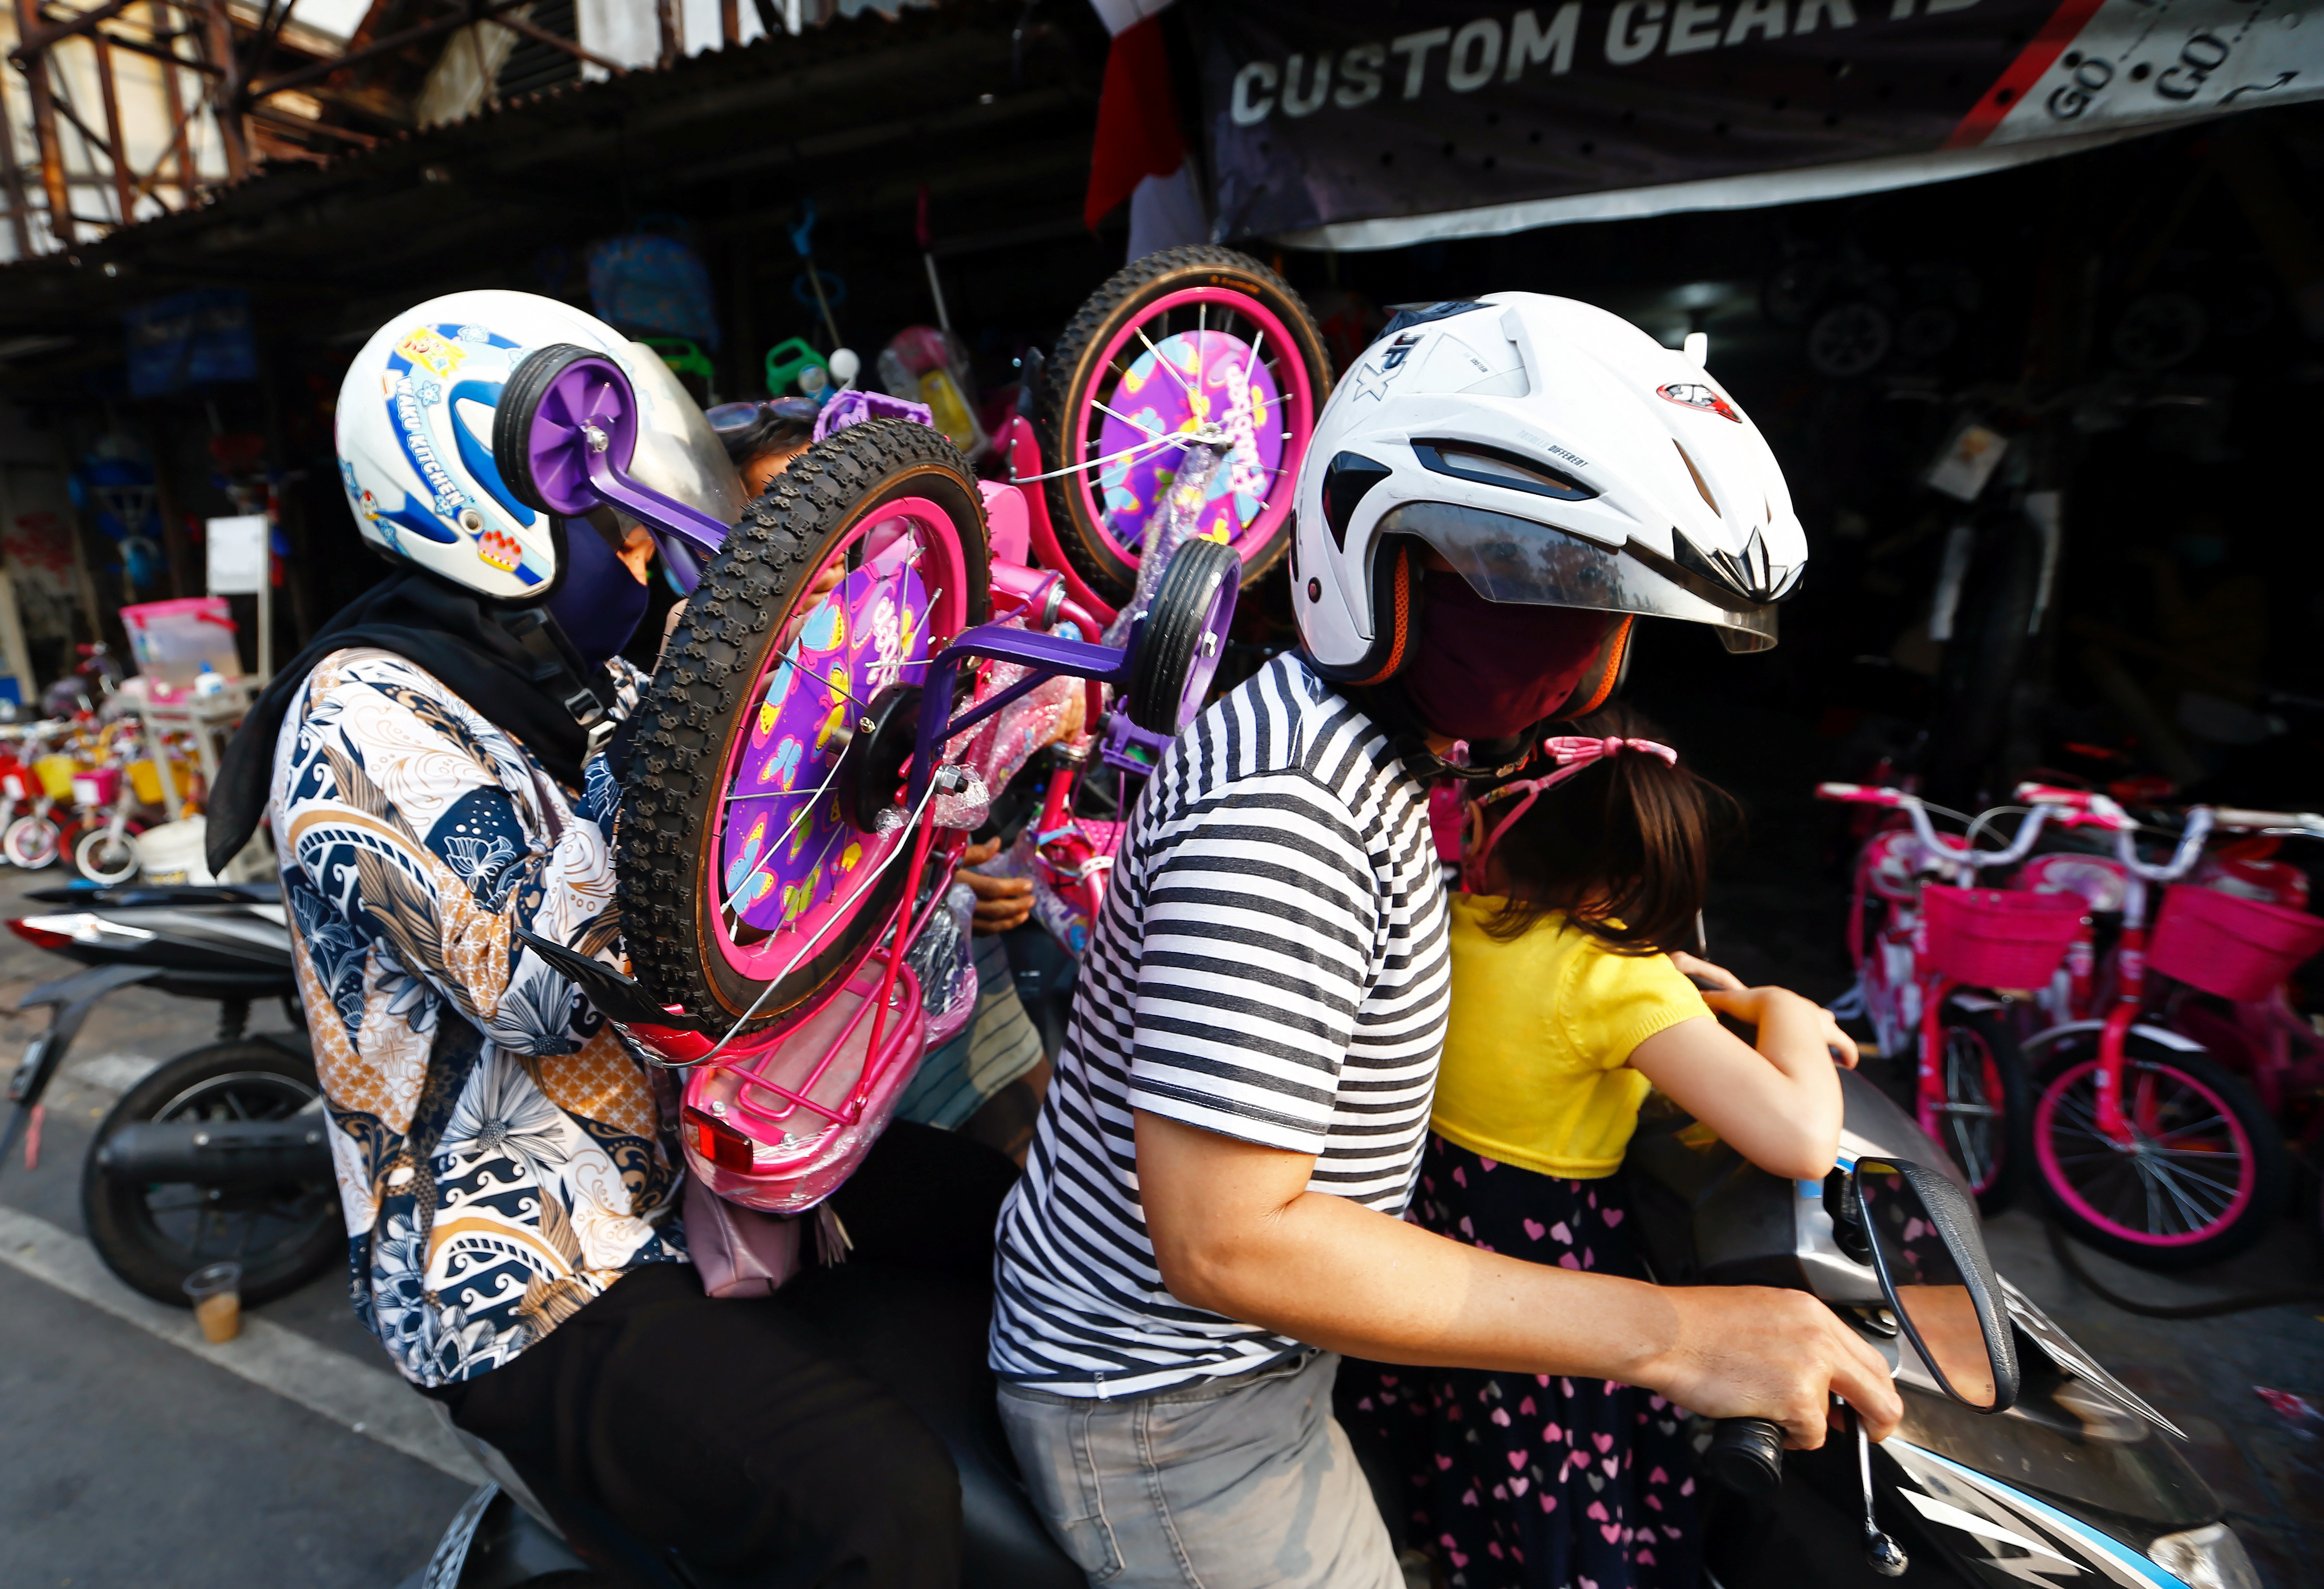 Customers wearing protective face masks carry a bicycle on a motorbike after shopping at a bicycle store, amid the coronavirus disease (COVID-19) outbreak in Jakarta, Indonesia, August 8, 2020. REUTERS/Ajeng Dinar Ulfiana - RC2N9I9I0AA8